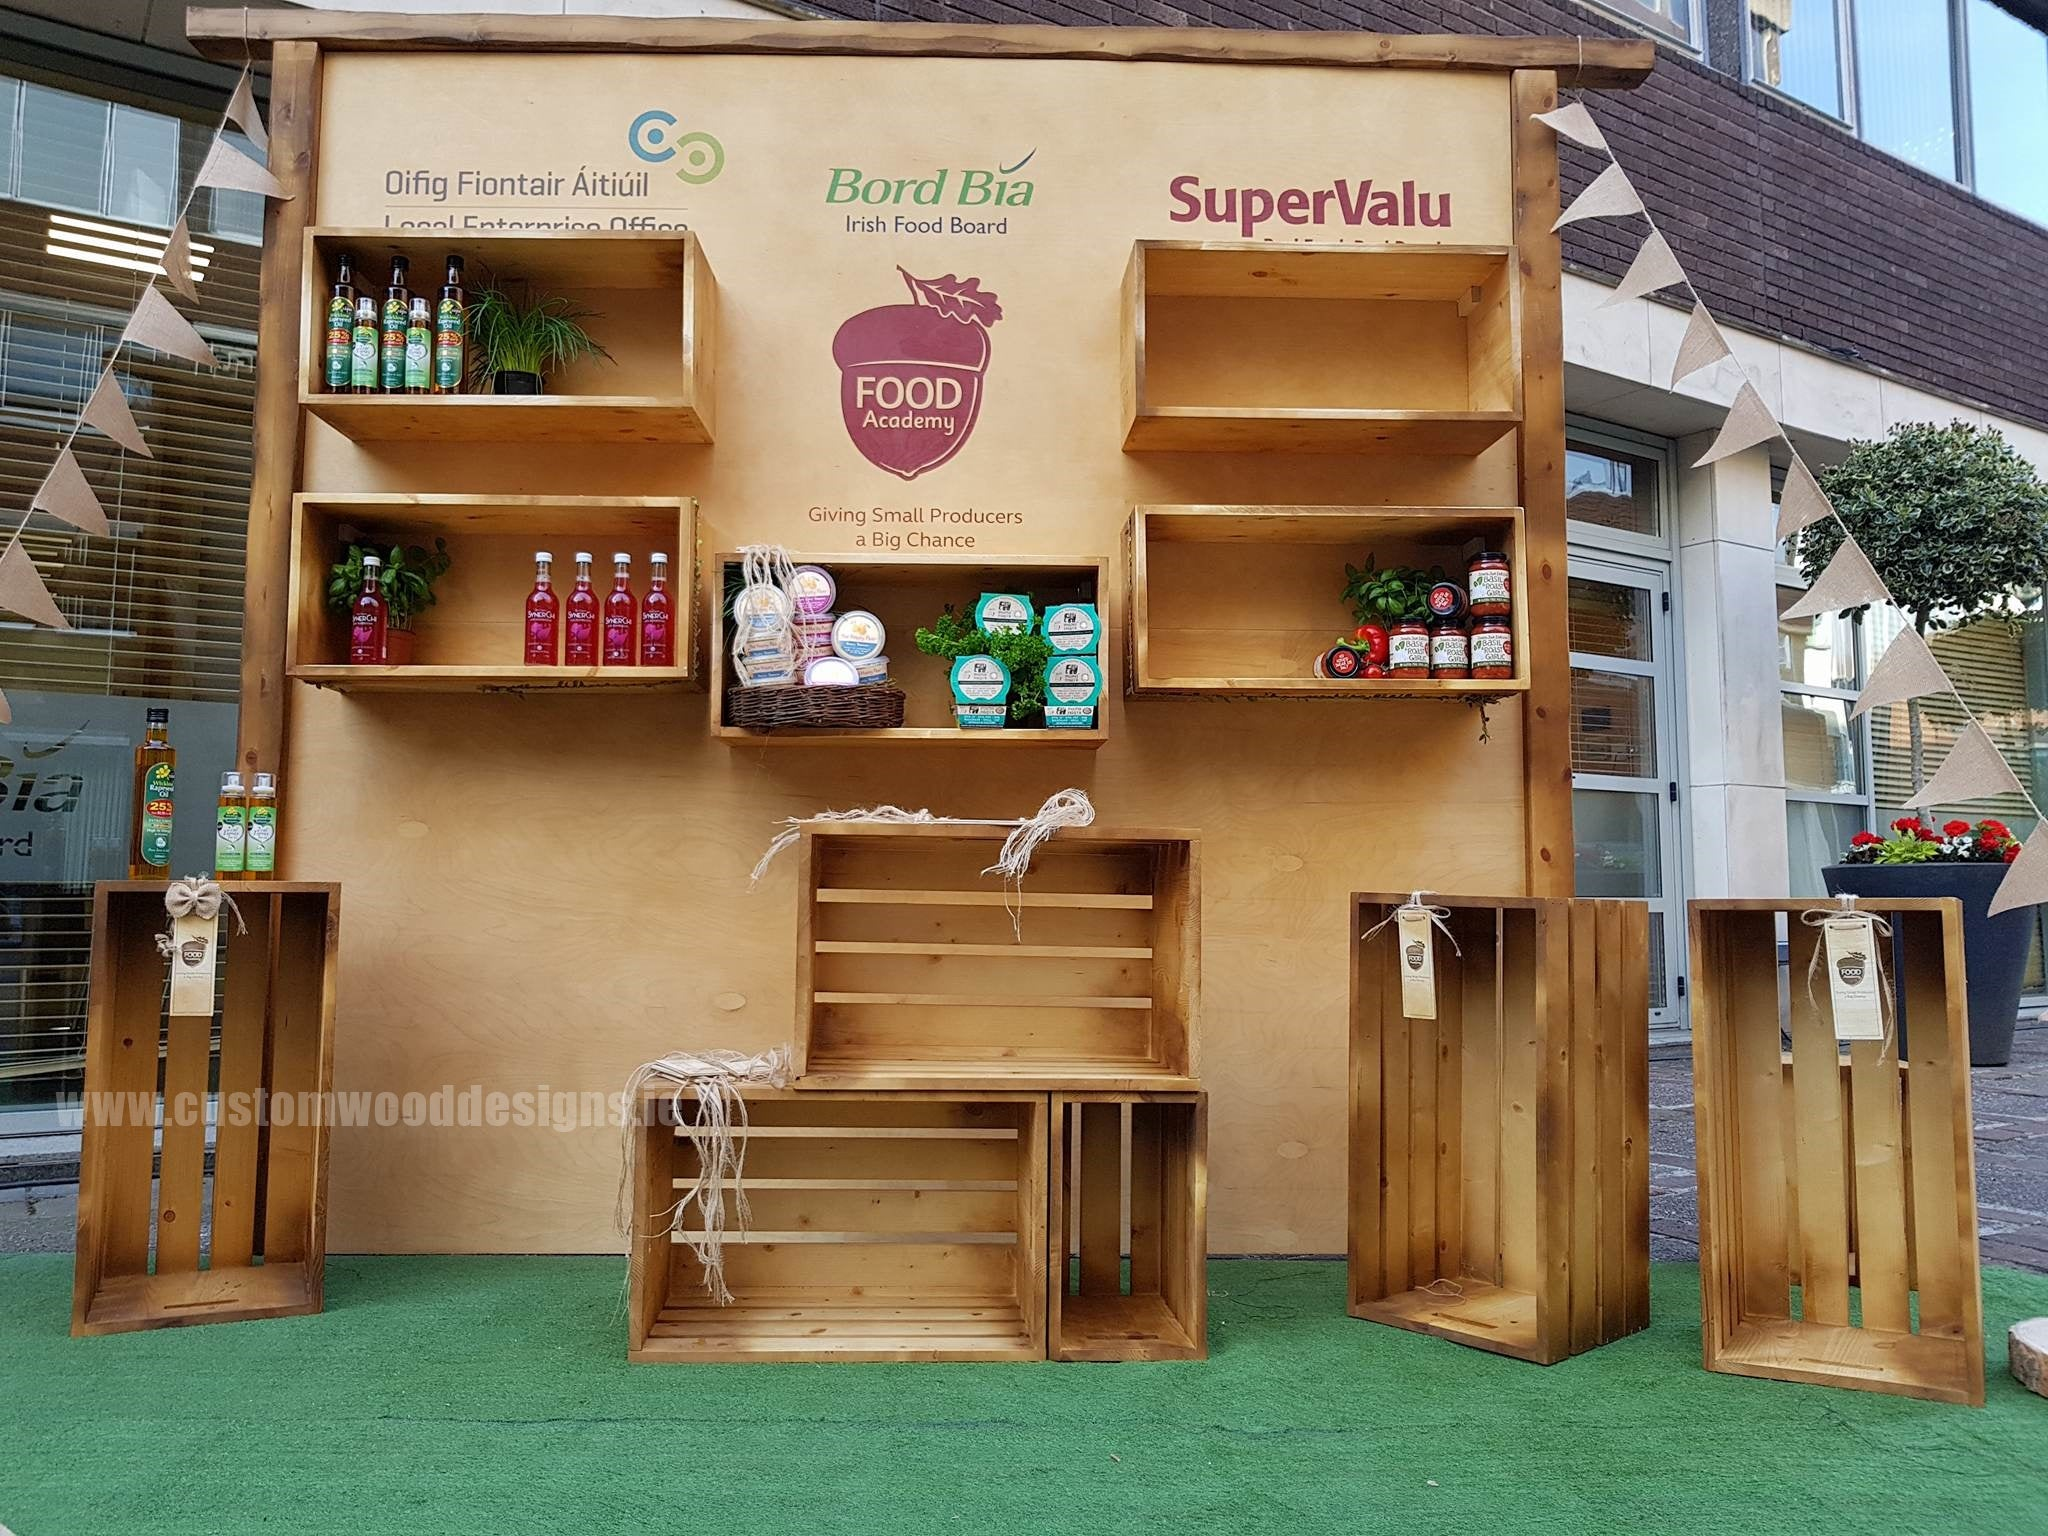 Bord bia retail desplay display stand customwooddesigns ireland crates backdrop Bord bia custom wood designs cnc custting design services show festival display stamnds modular stands ireland gary byrne klaudia byrne